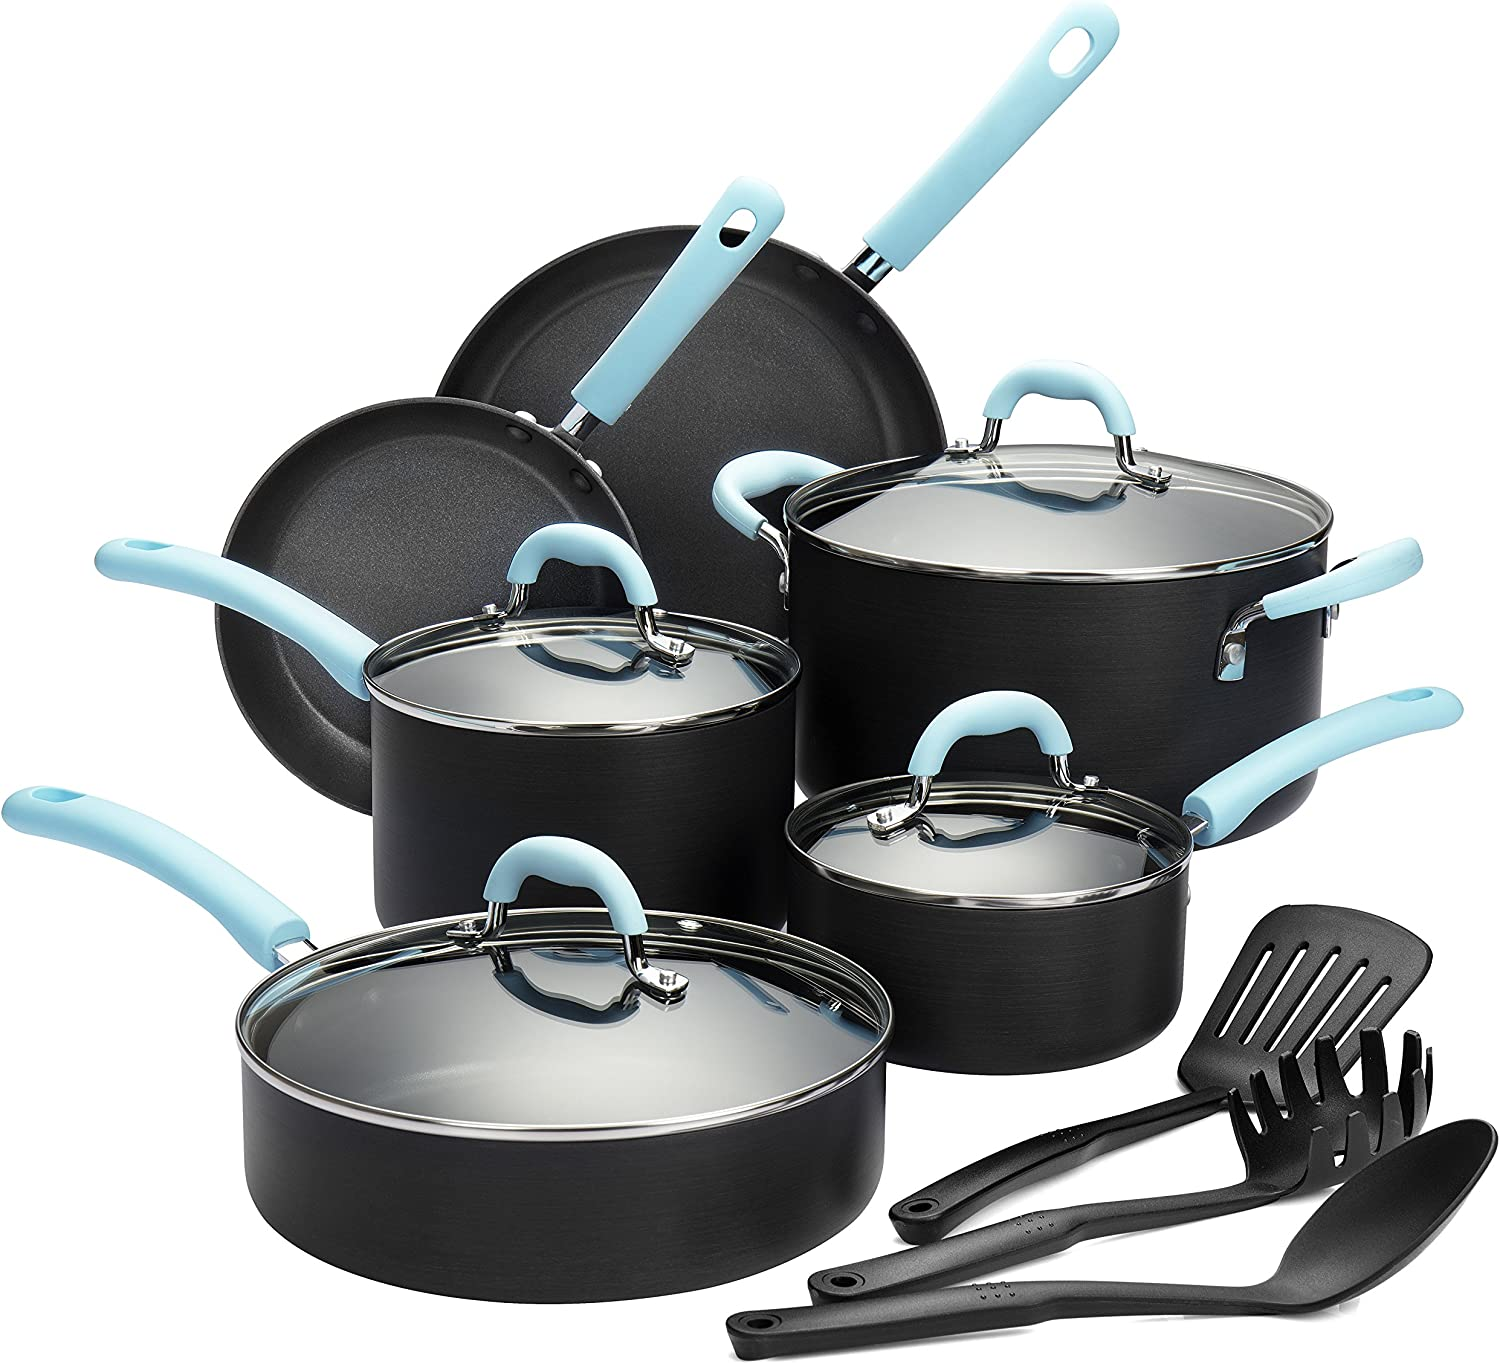 Finnhomy Super Value Hard-Anodized Aluminum Cookware Set, Double Nonstick Coating Kitchen Pots and Pan Set, Professional for Home Restaurant, 13-Piece with bluee Handle